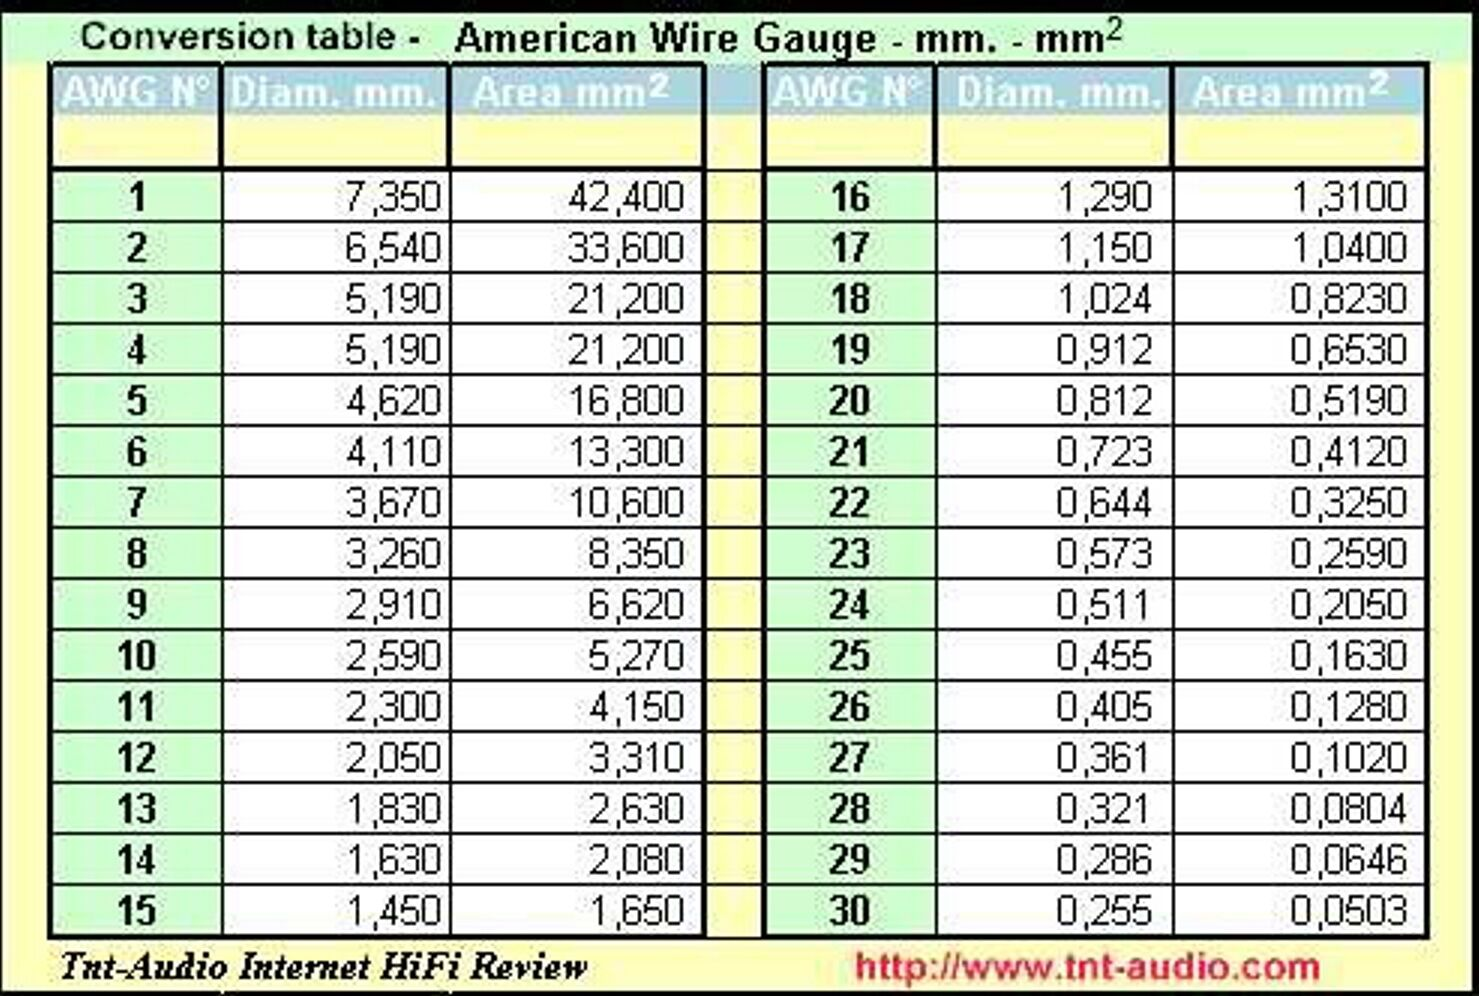 Electrical wire gauge to mm conversion chart choice image wiring wire gauge mm conversion chart images wiring table and diagram electrical wire gauge to mm conversion greentooth Choice Image